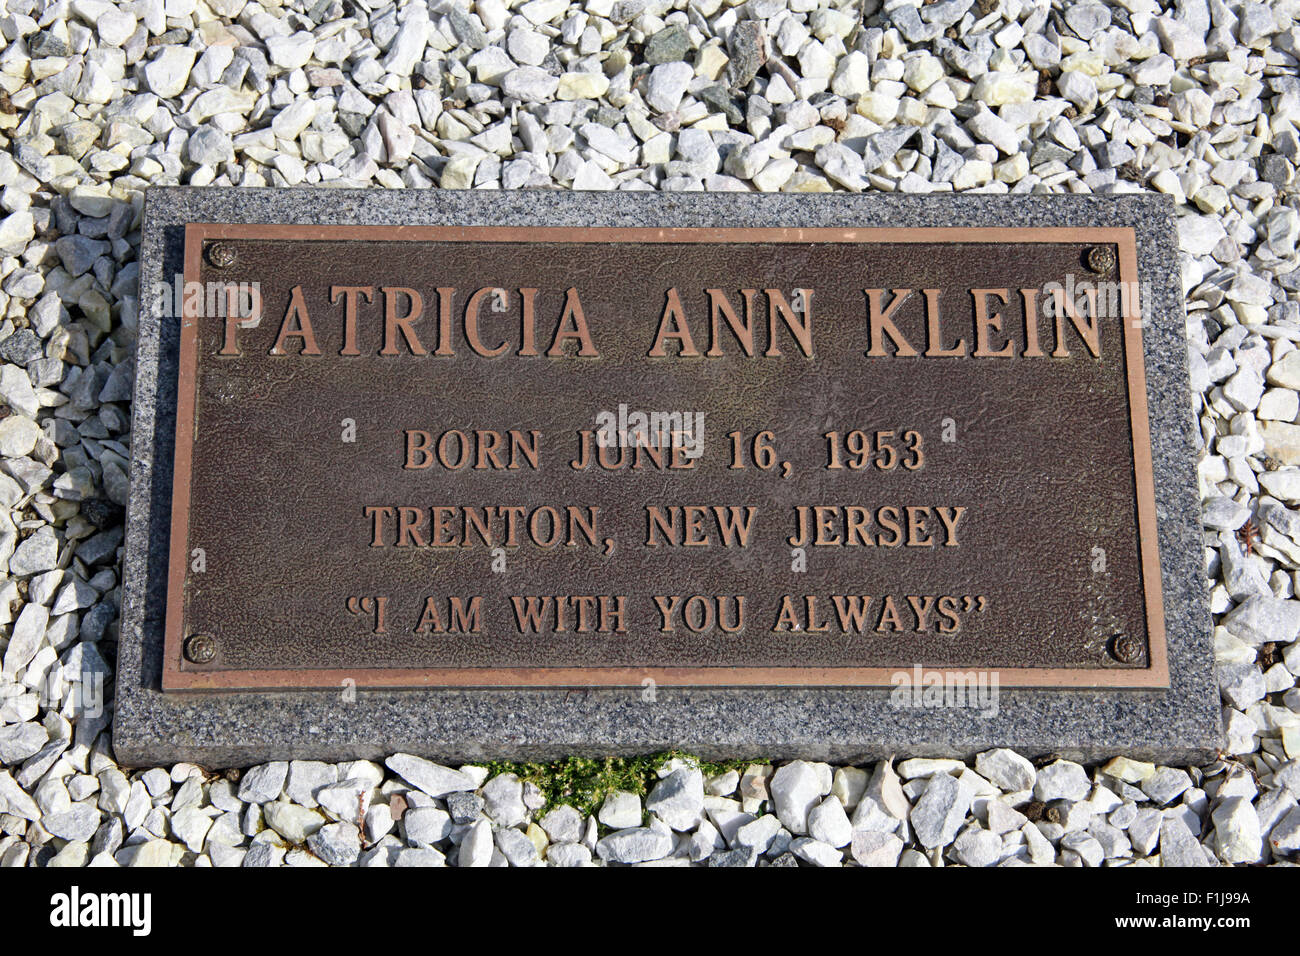 Patricia Ann Klein,Scotland,Lodge,Visitors,Centre,DLVC,Trust,Lockerbie,Memorial,Remembrance,Scotland,Victims,Pan,Am,PanAm,flight,103,bomb,bombing,terrorist,December,1988,attack,crash,dead,site,21/12/1988,270,victims,Scottish,Town,conspiracy,blast,Tundergarth,Room,garden,of,Dryfesdale,New York,GoTonySmith,Lodge,Visitors,Centre,DLVC,Trust,Lockerbie,Memorial,Scotland,Victims,Pan,Am,PanAm,flight,103,bomb,bombing,terrorist,December,1988,attack,crash,dead,site,21/12/1988,270,victims,Scottish,Town,conspiracy,blast,Tundergarth,Room,garden,of,Dryfesdale,Cemetery,news,Cultural,understanding,remembering,innocent,transatlantic,Frankfurt,Detroit,Libyan,Libya,Colonel Muammar Gaddafi,civil,case,compensation,terrorism,PA103,30,30years,years,Syracuse,University,SU,family,collections,Story,Archive,Archives,40,35,Timeline,saga,disaster,air,Scholars,program,programs,remembrance,Clipper Maid of the Seas,N739PA,Boeing,727,plane,aircraft,Scotland,UK,United Kingdom,GB,Great Britain,resting,place,Buy Pictures of,Buy Images Of,New York,al megrahi,30 Years